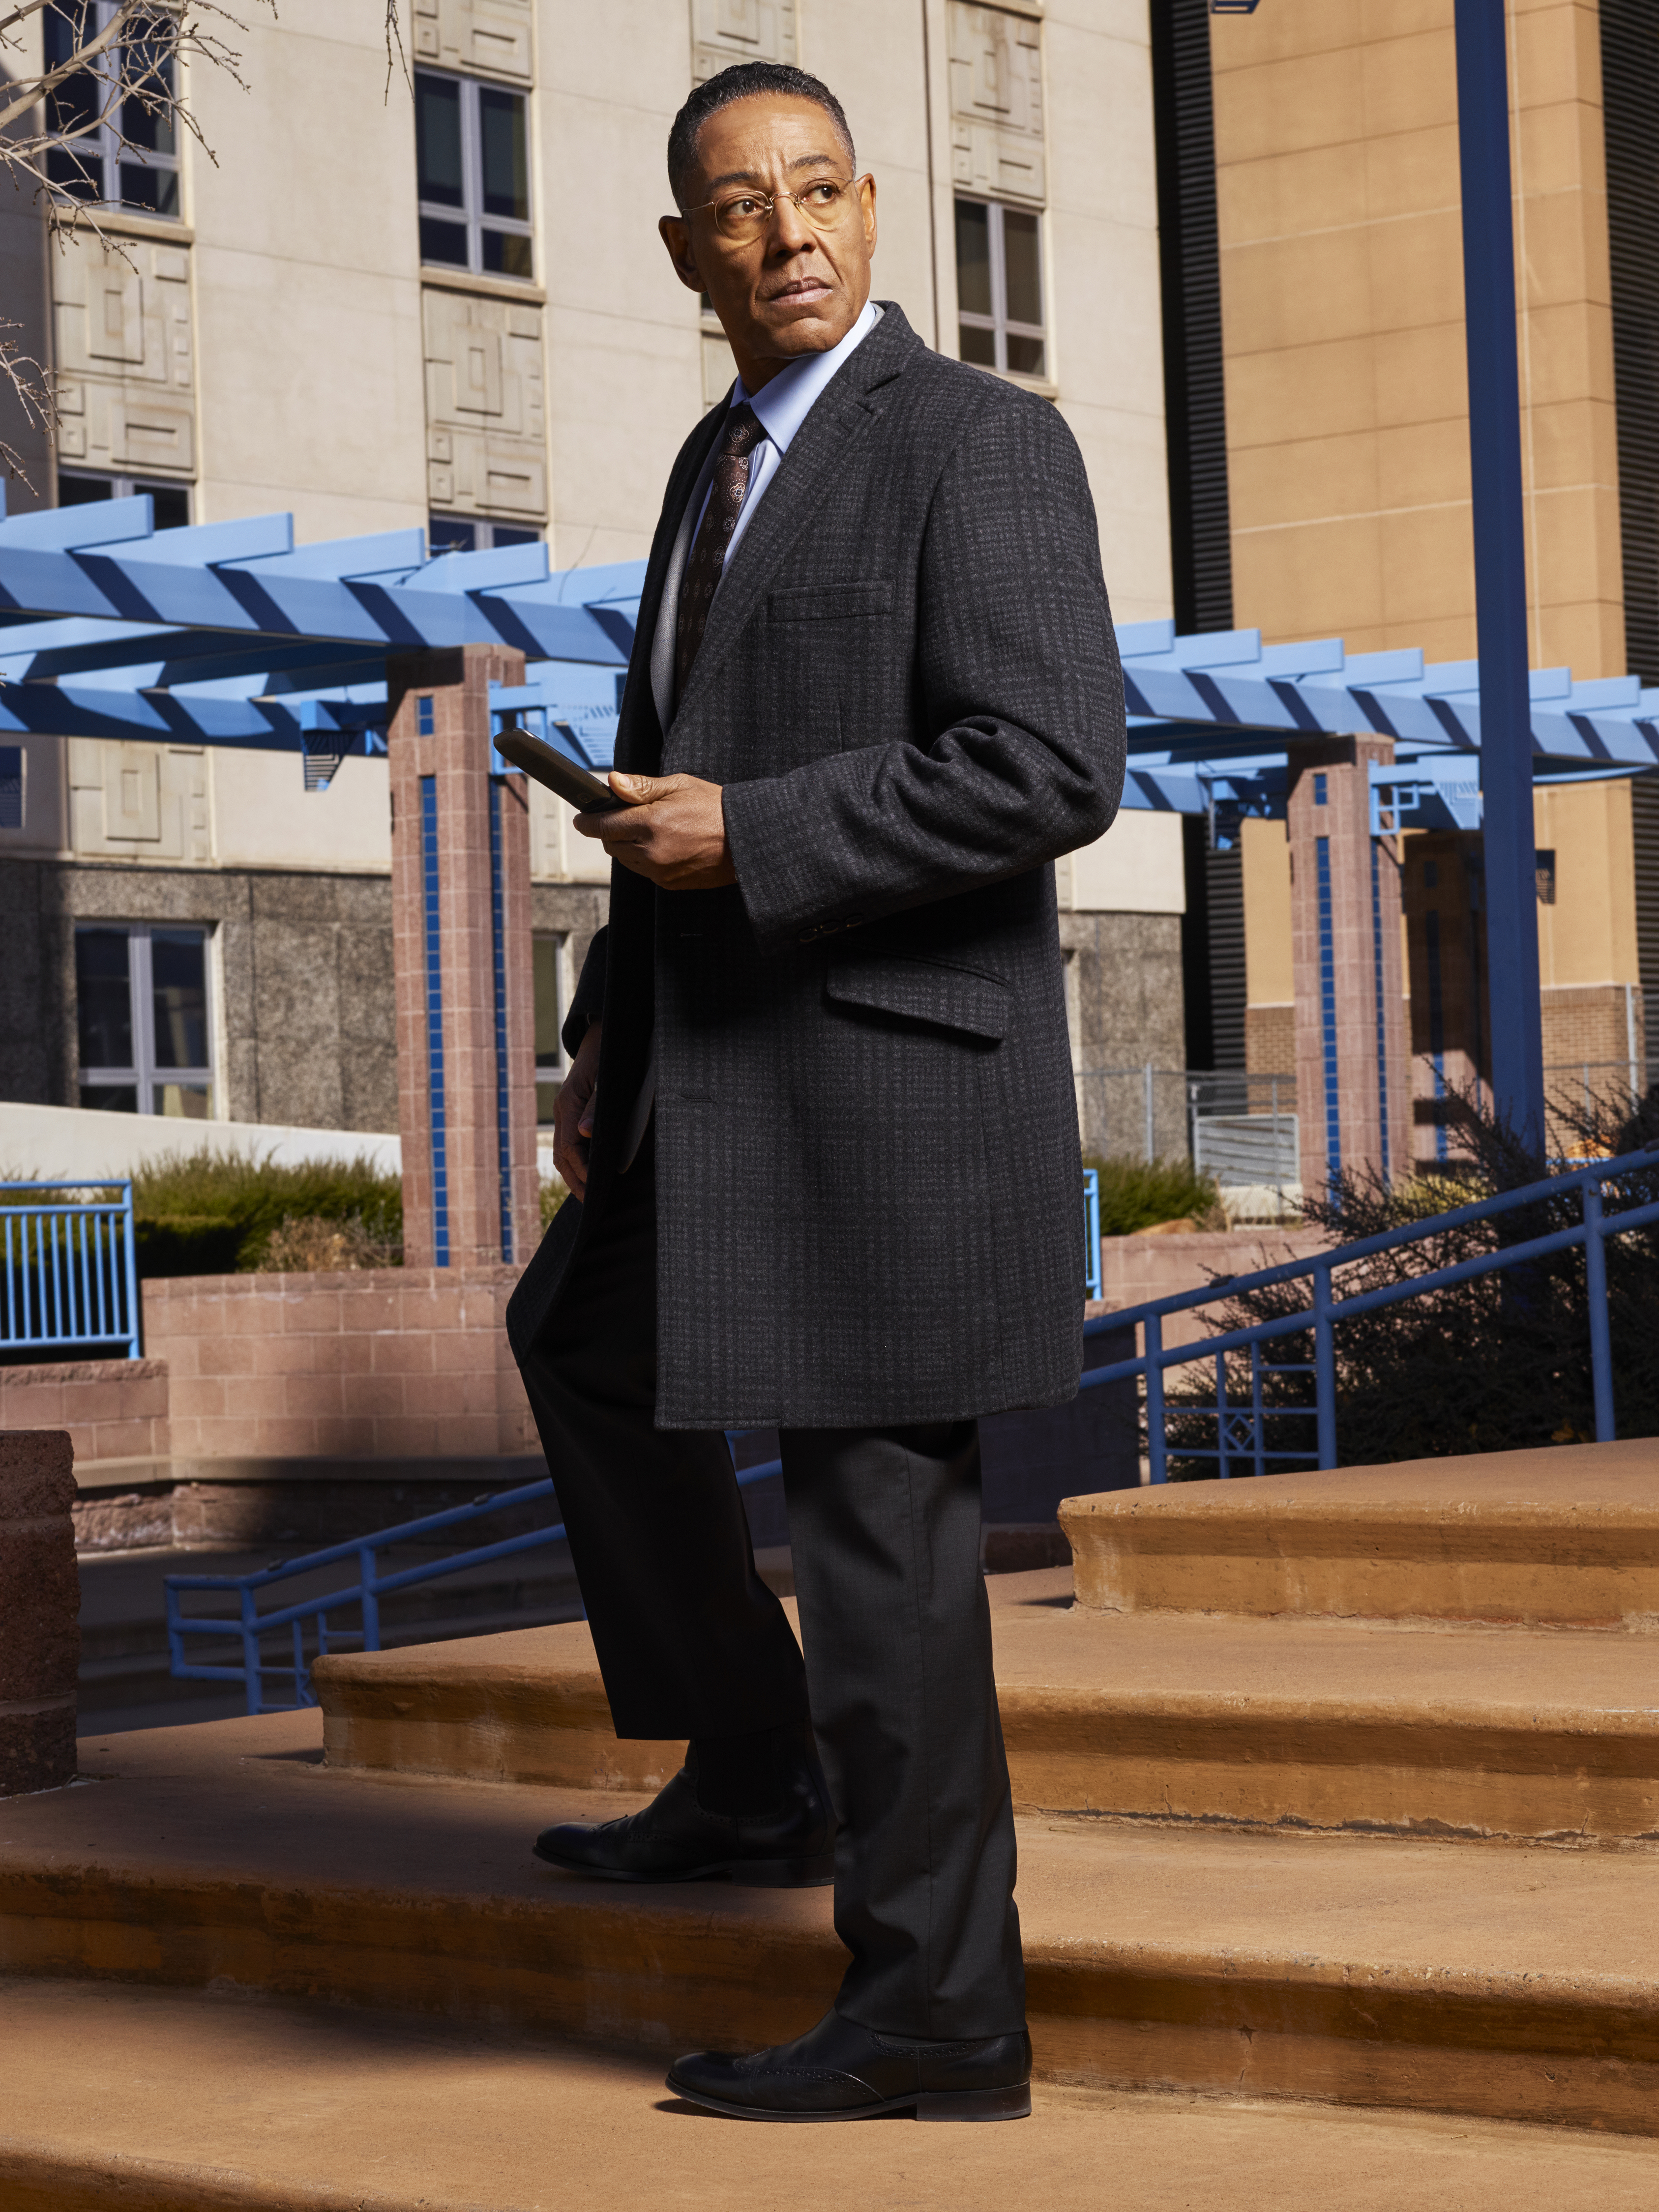 Car Tracking Device >> 'Better Call Saul' Recap: Jimmy Meets Gus In Season 3, Episode 2 'Witness'